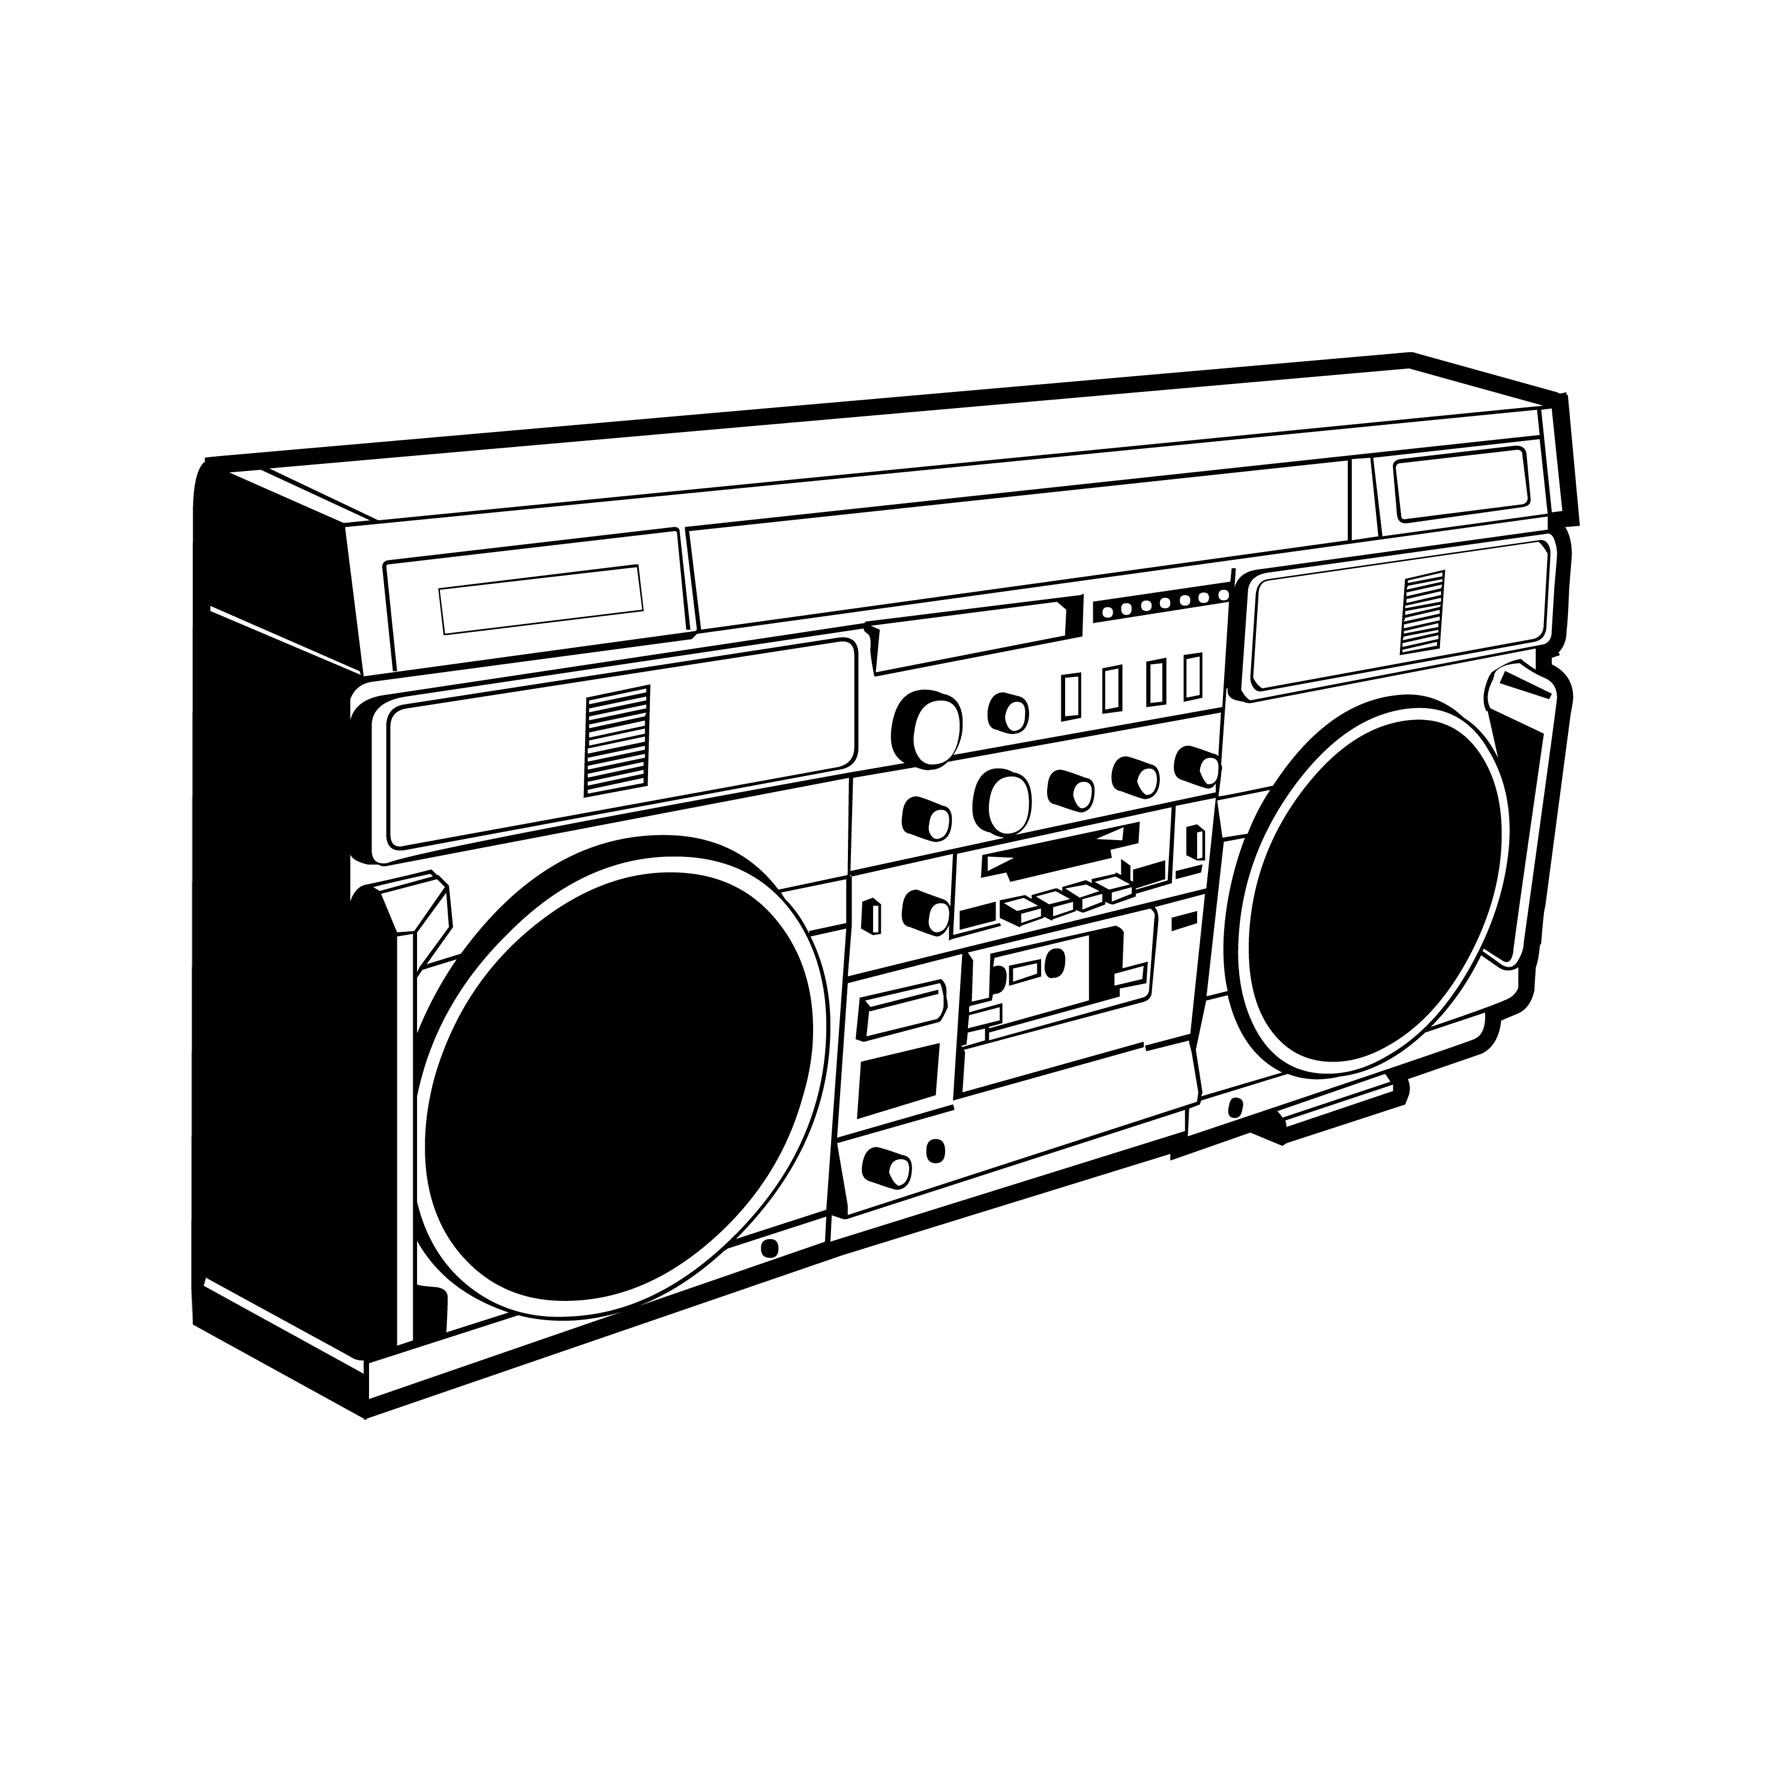 Photoshop guide the making of ghetto blaster pxleyes original image sciox Gallery